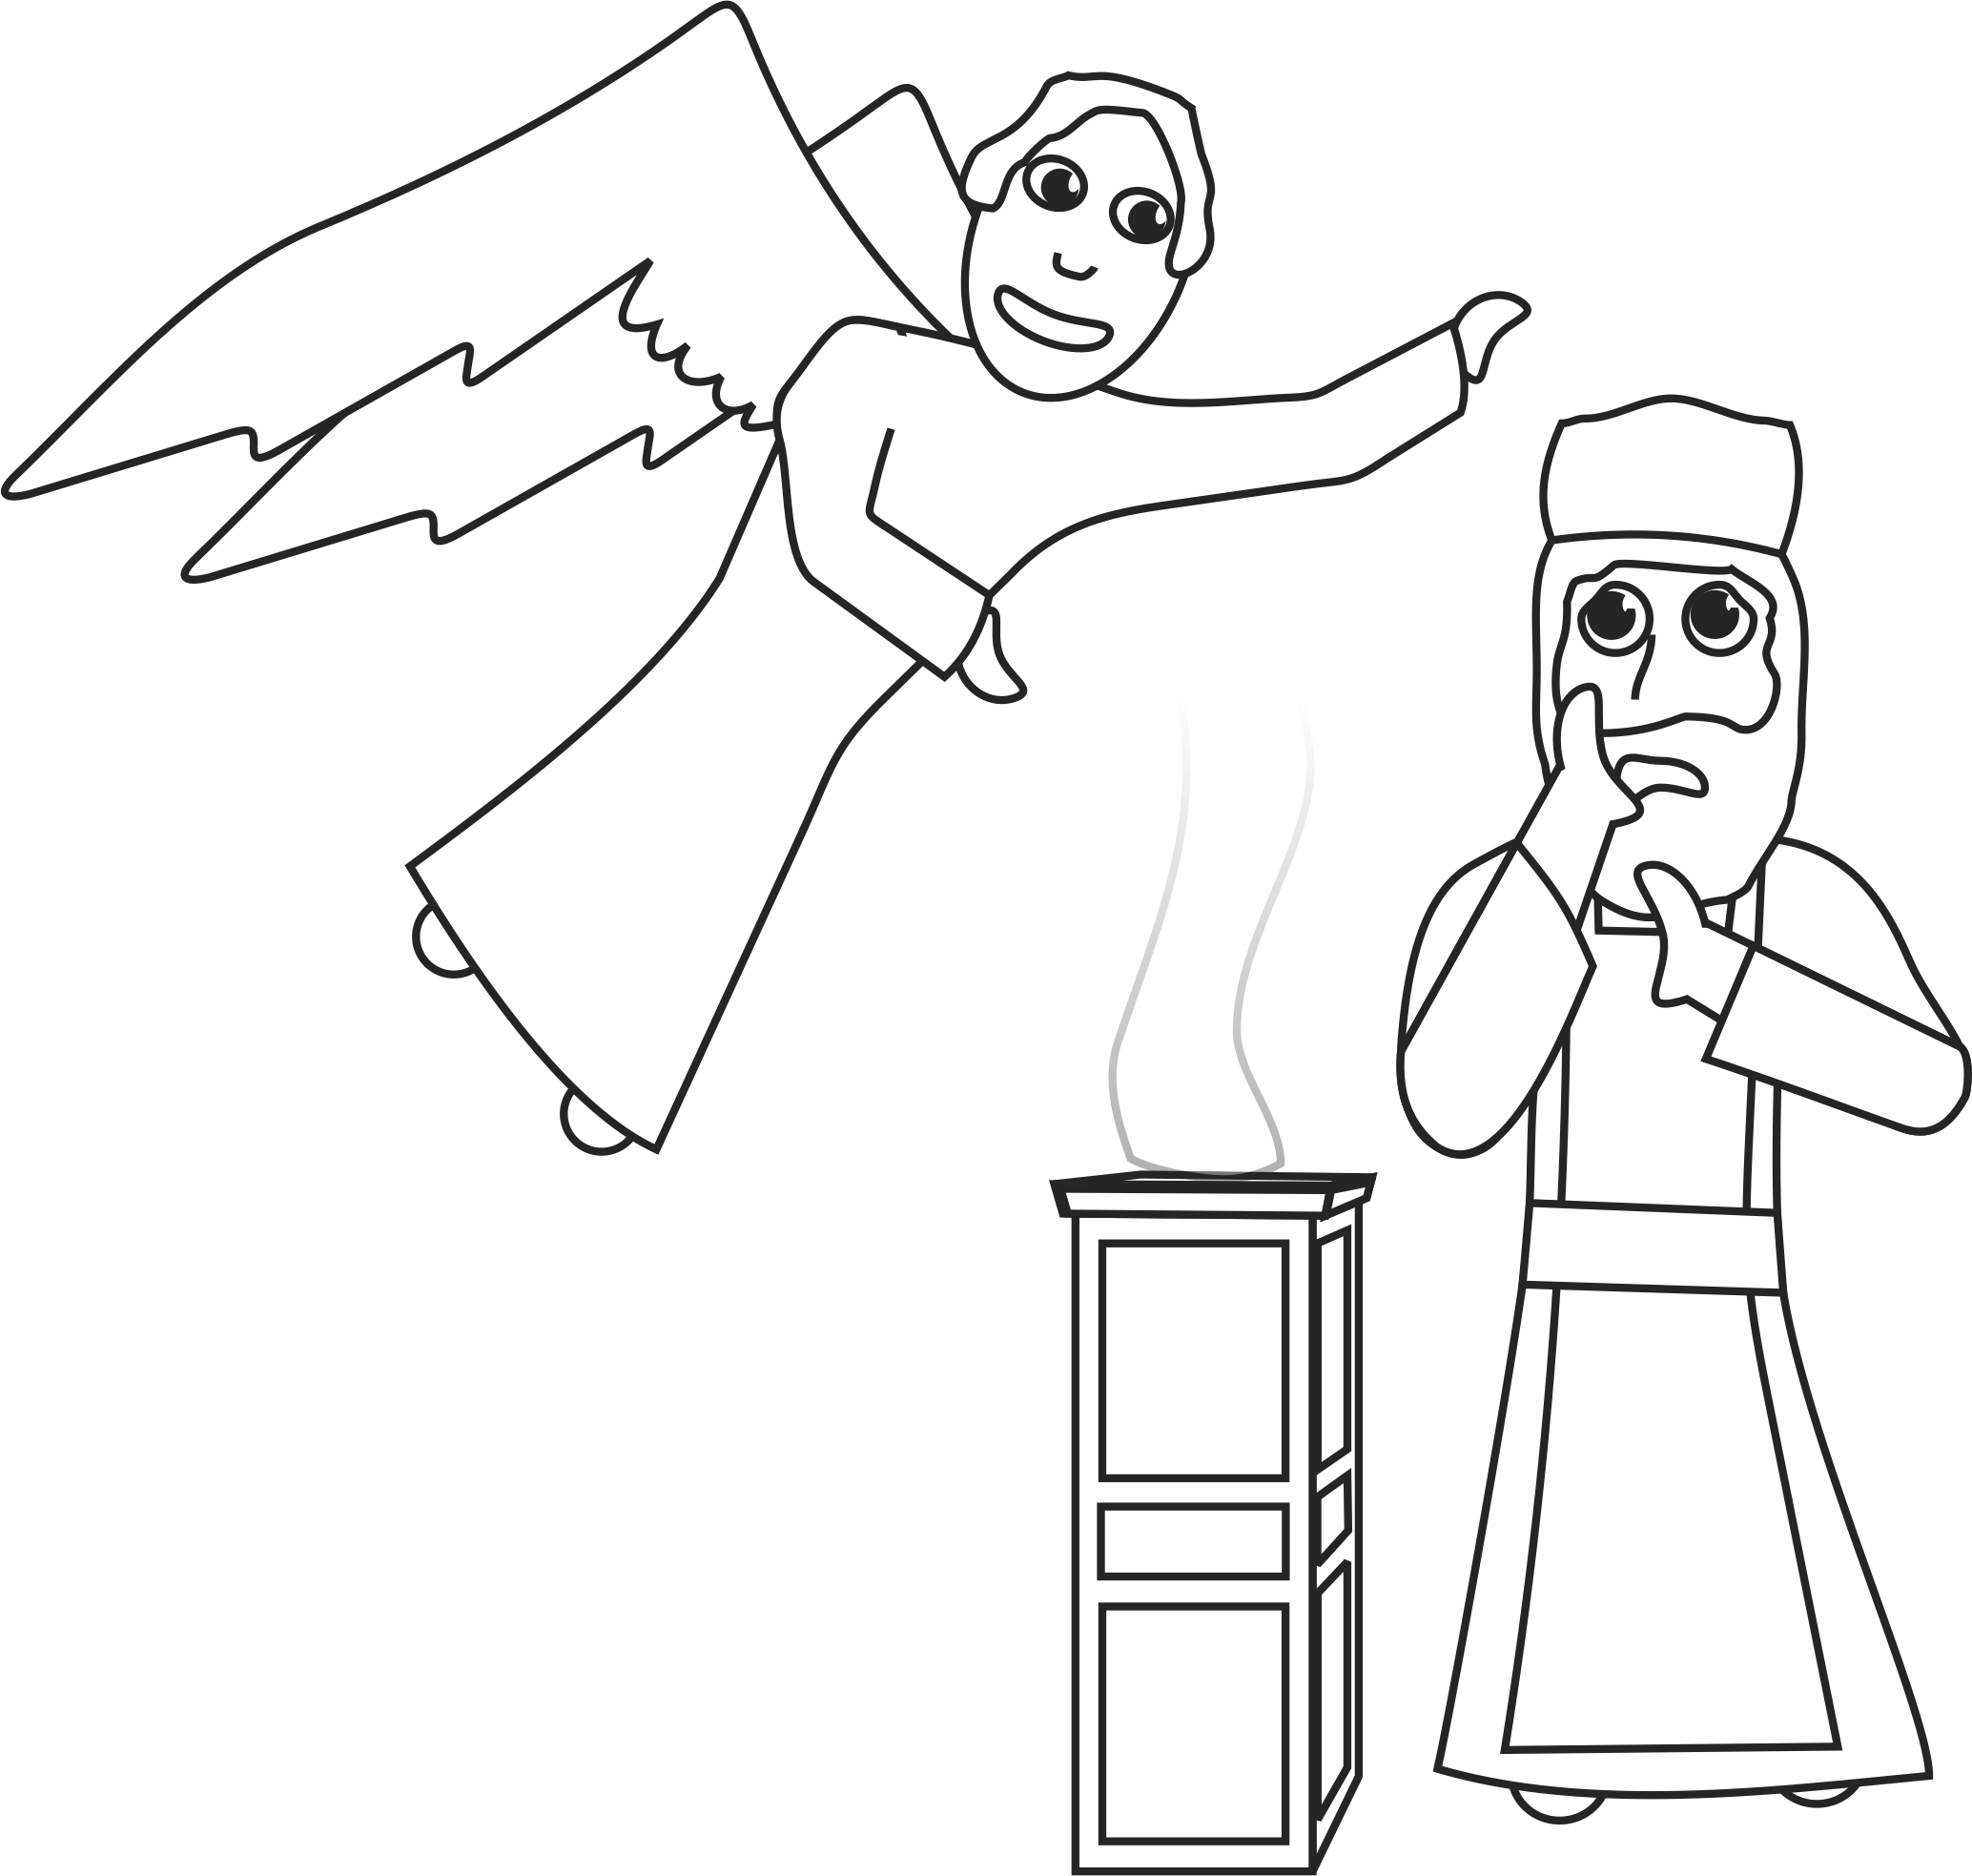 zechariah visions coloring pages - photo#9